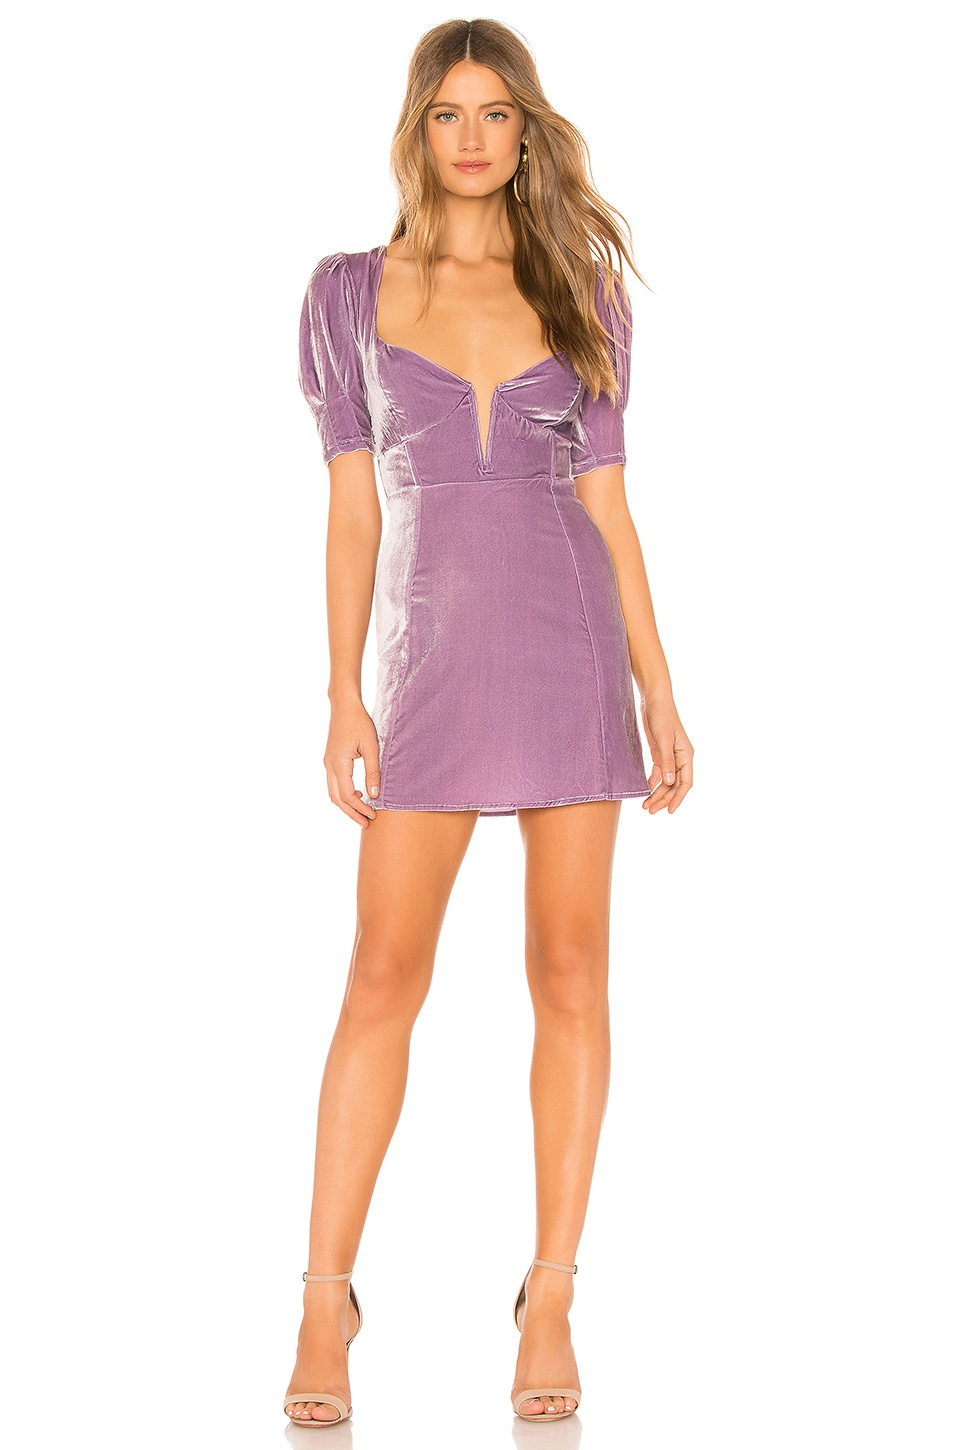 For Love & Lemons FOR LOVE & LEMONS VIVA VELVET MINI DRESS IN LAVENDER.